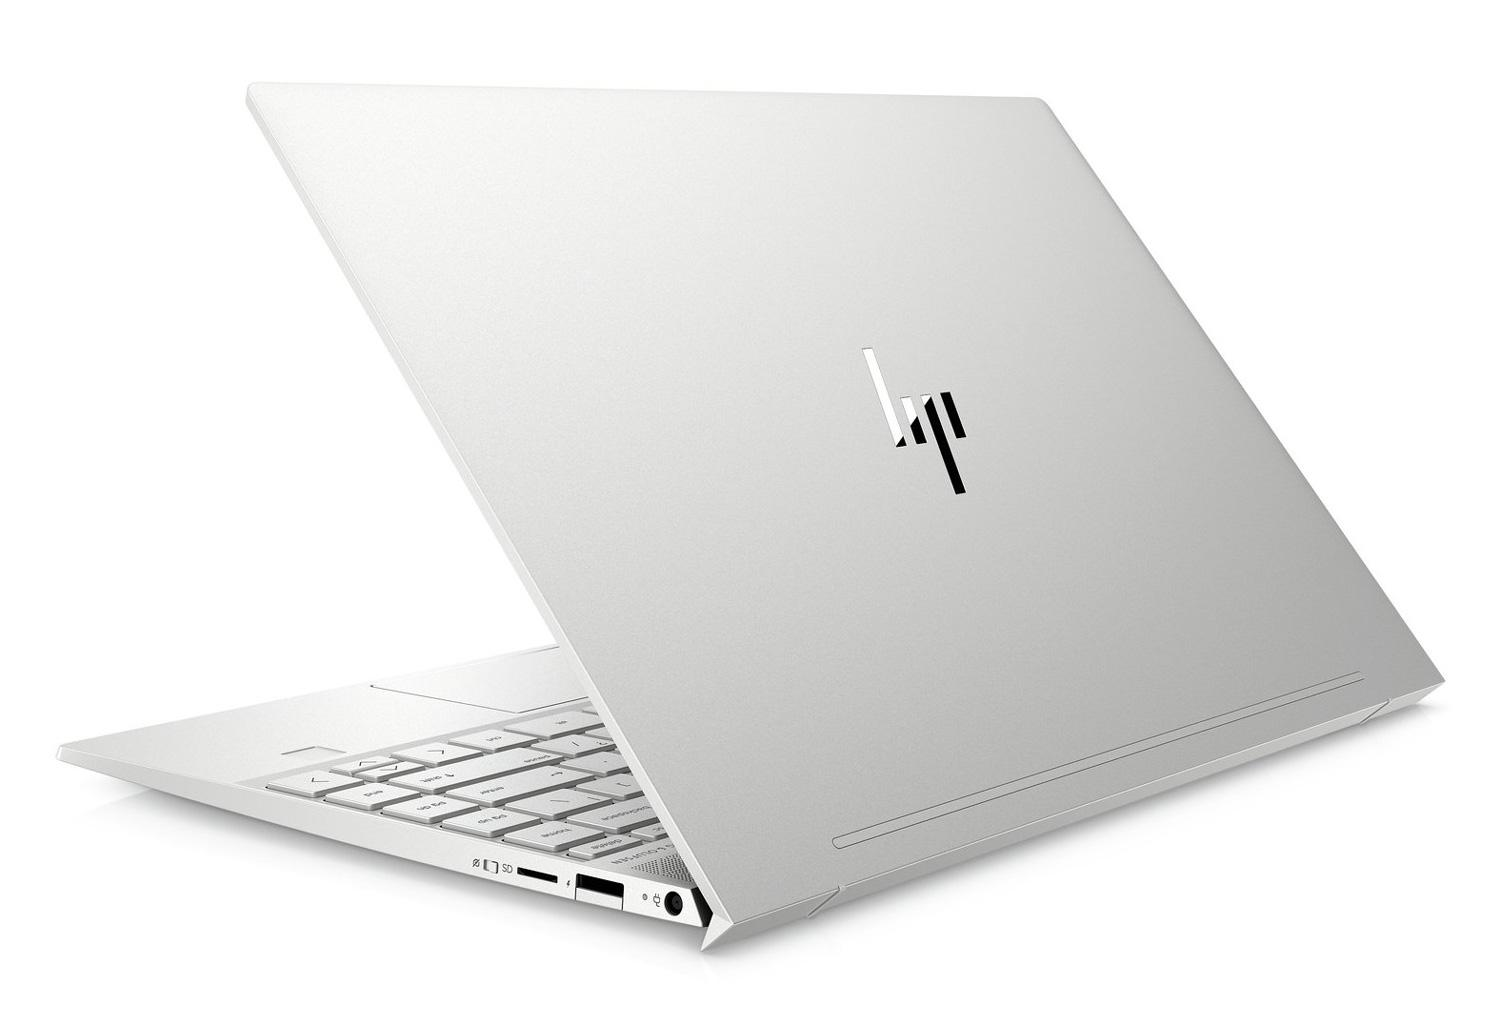 Ordinateur portable HP Envy 13-aq0002nf Argent - photo 4